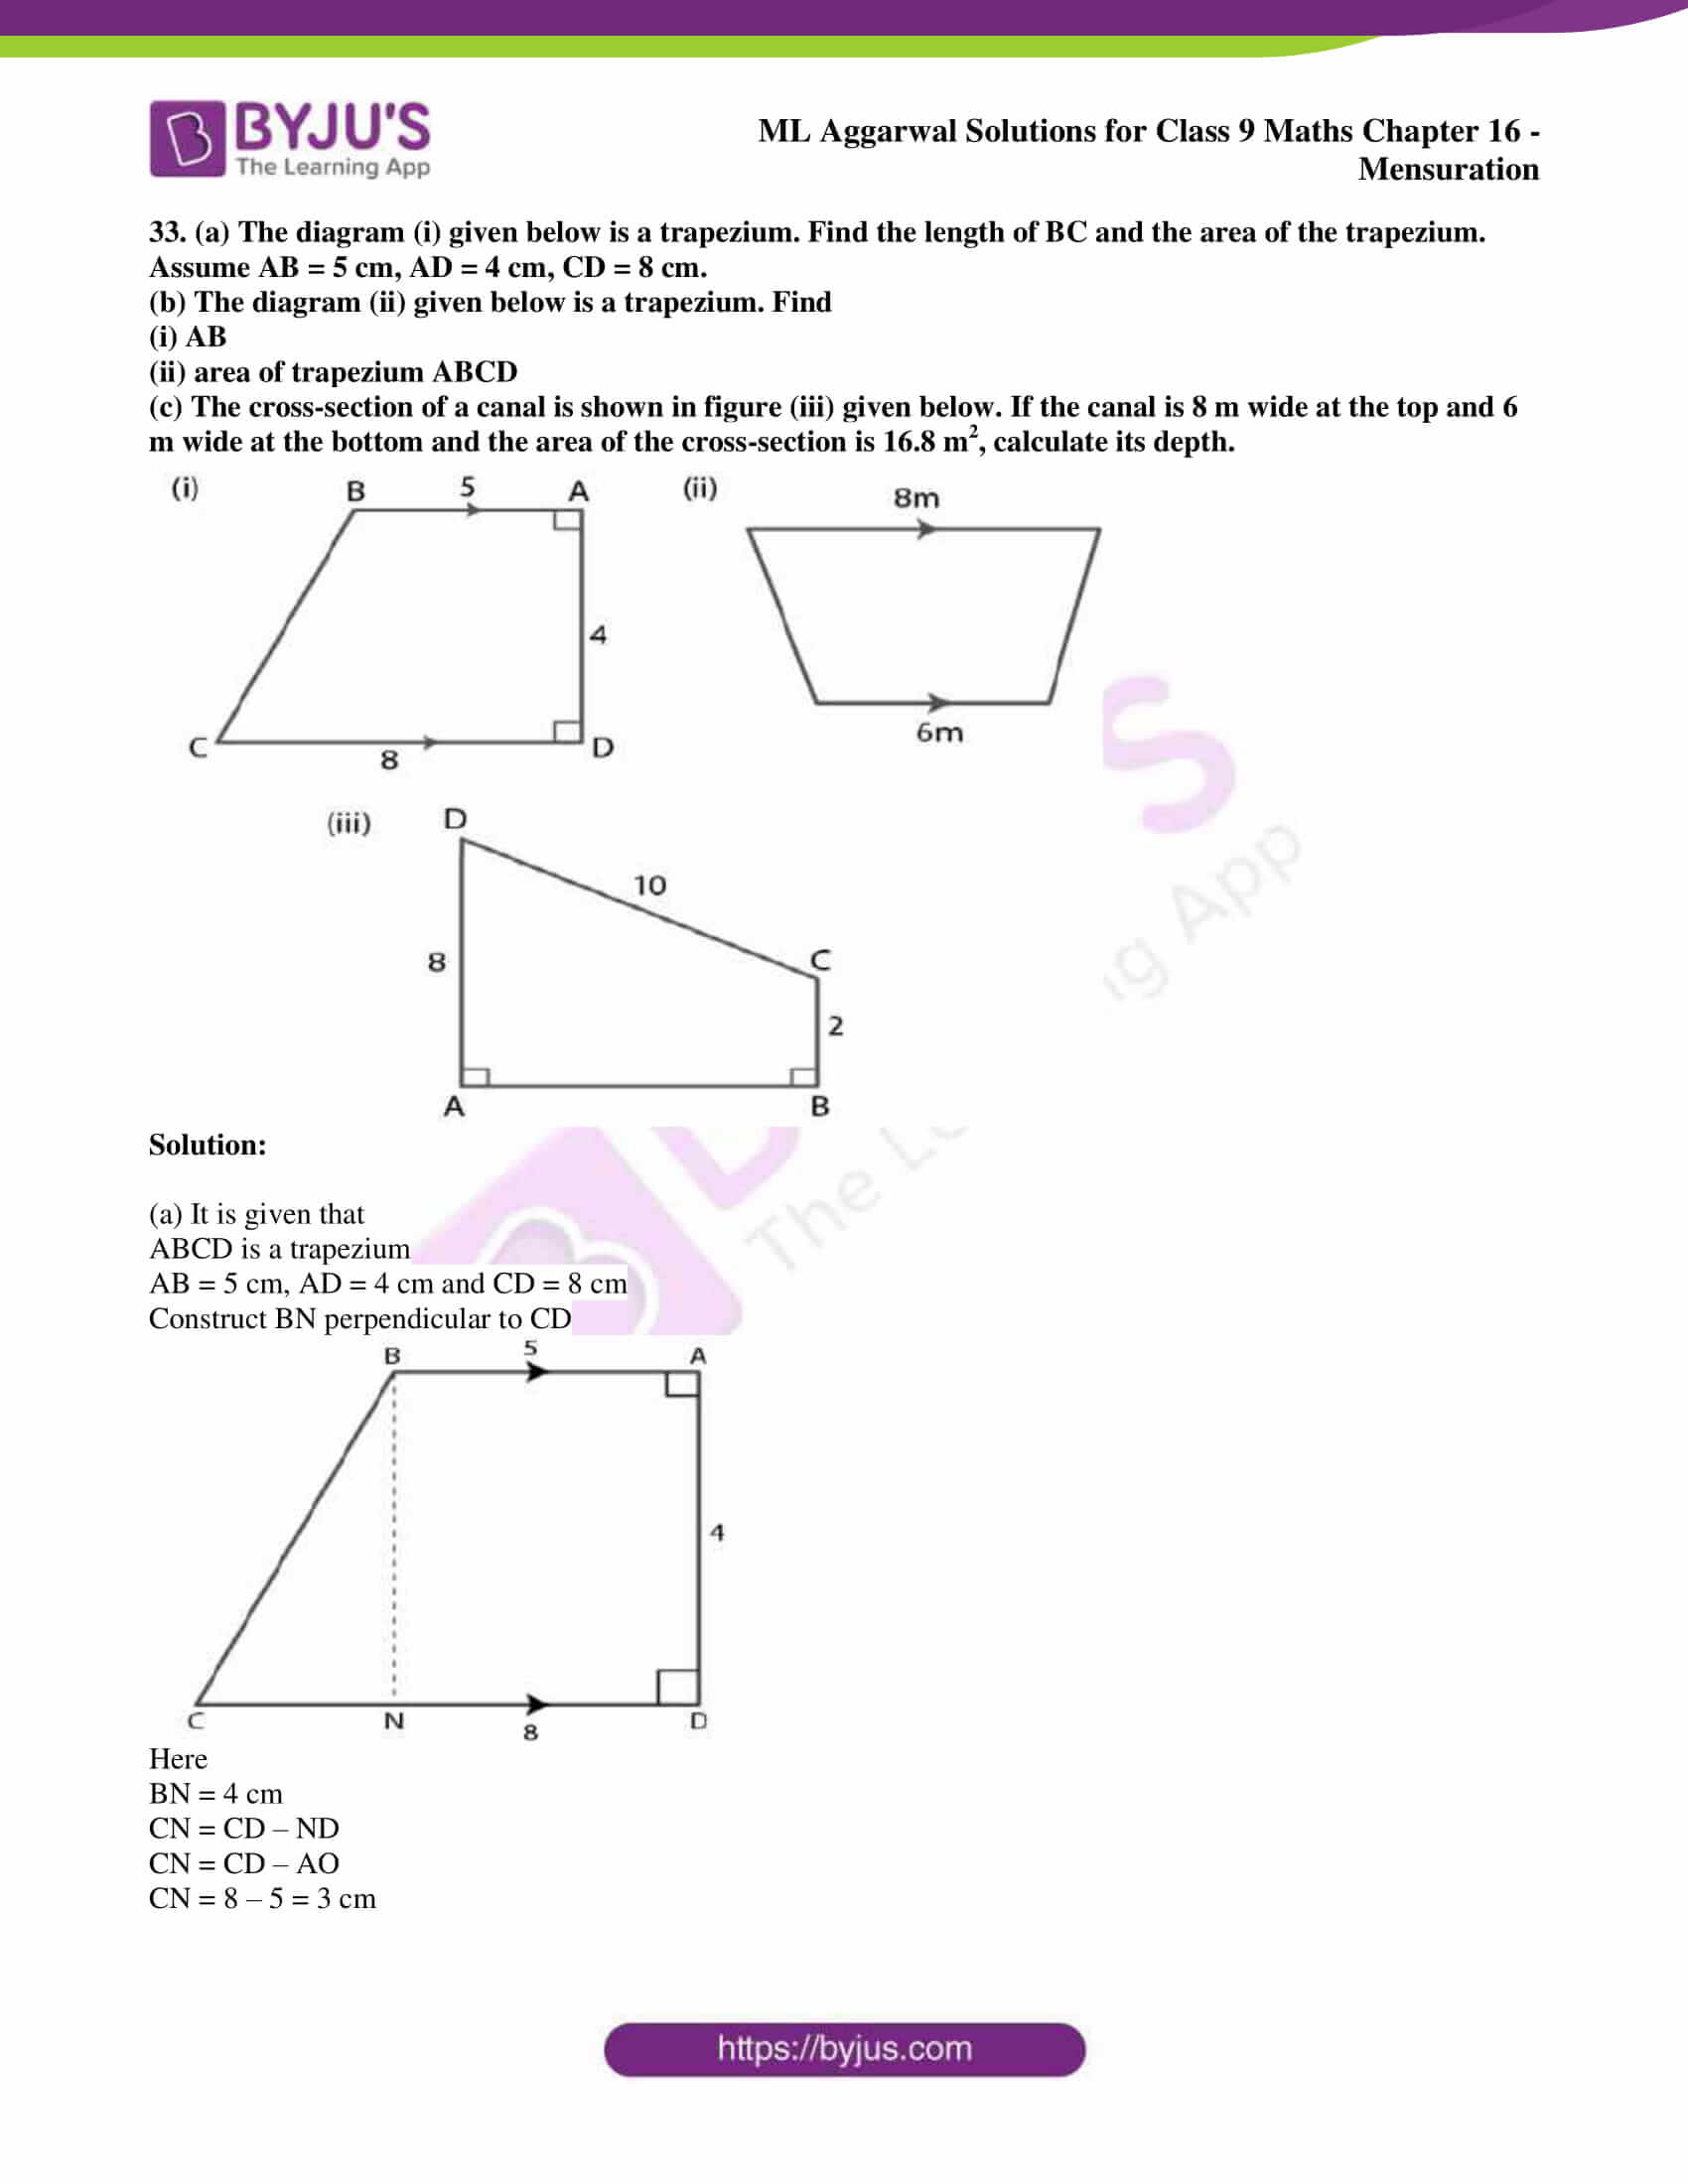 ml aggarwal solutions for class 9 maths chapter 16 054